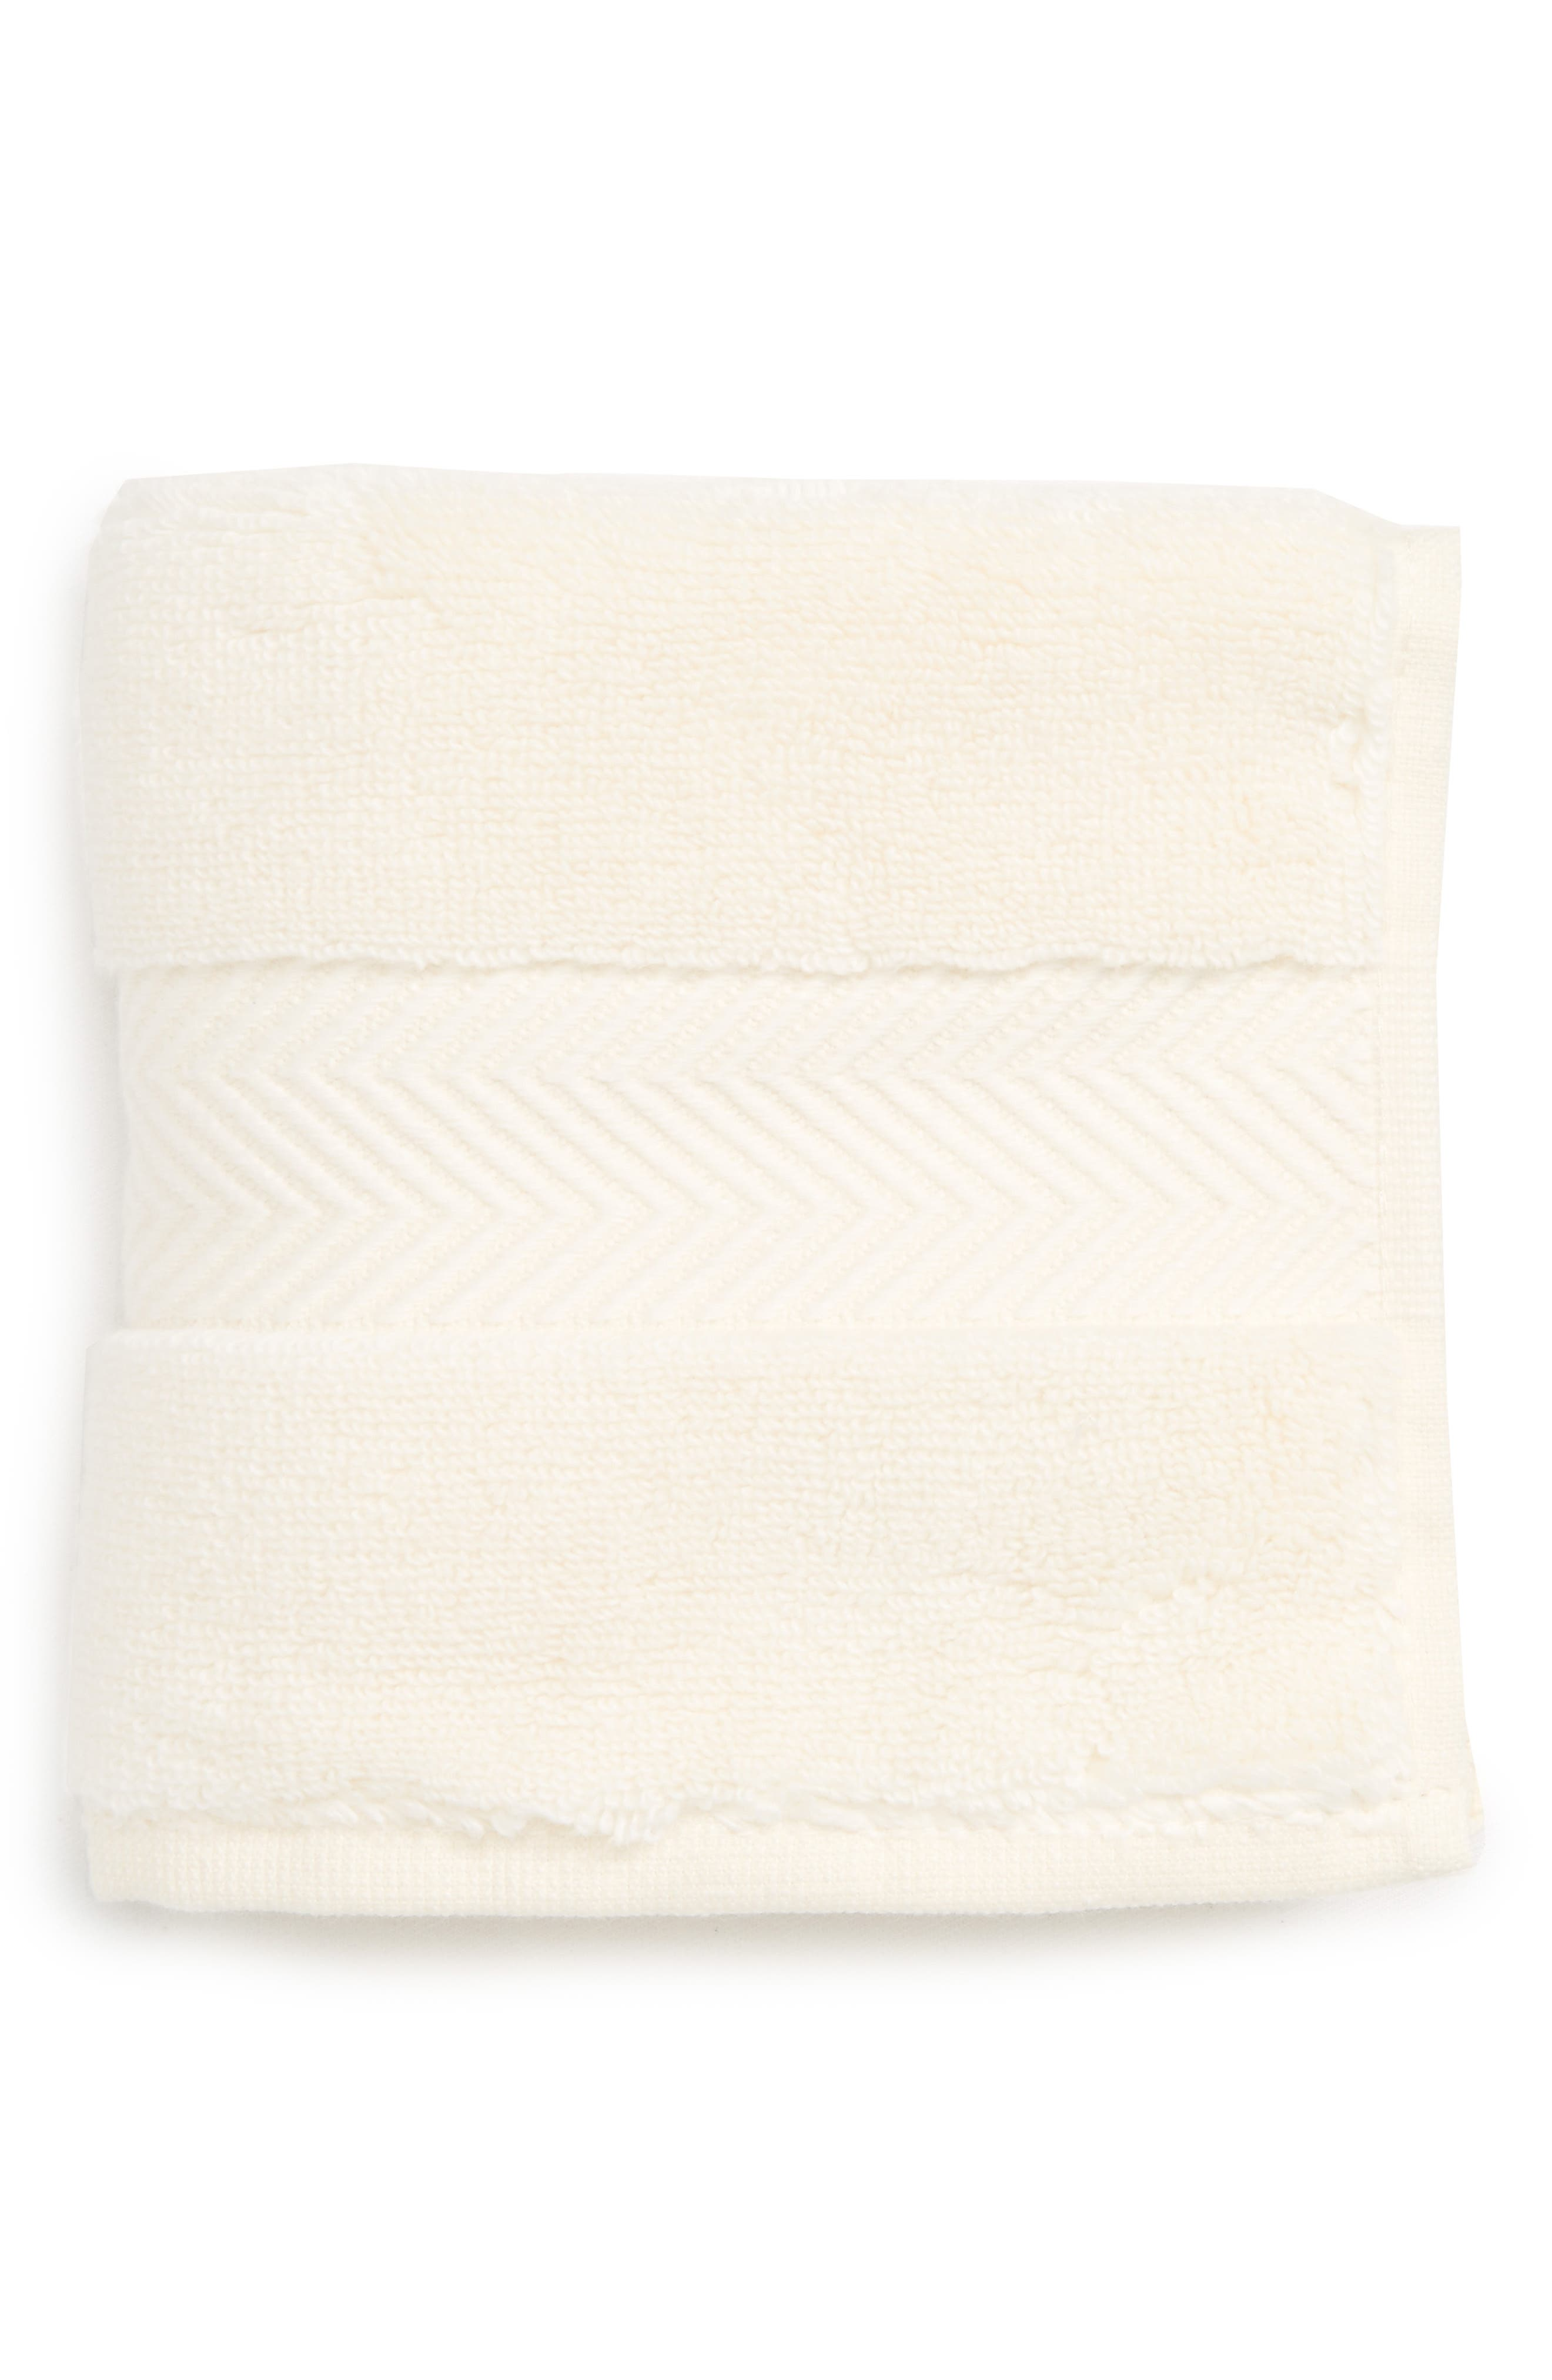 Hydrocotton Washcloth,                             Alternate thumbnail 62, color,